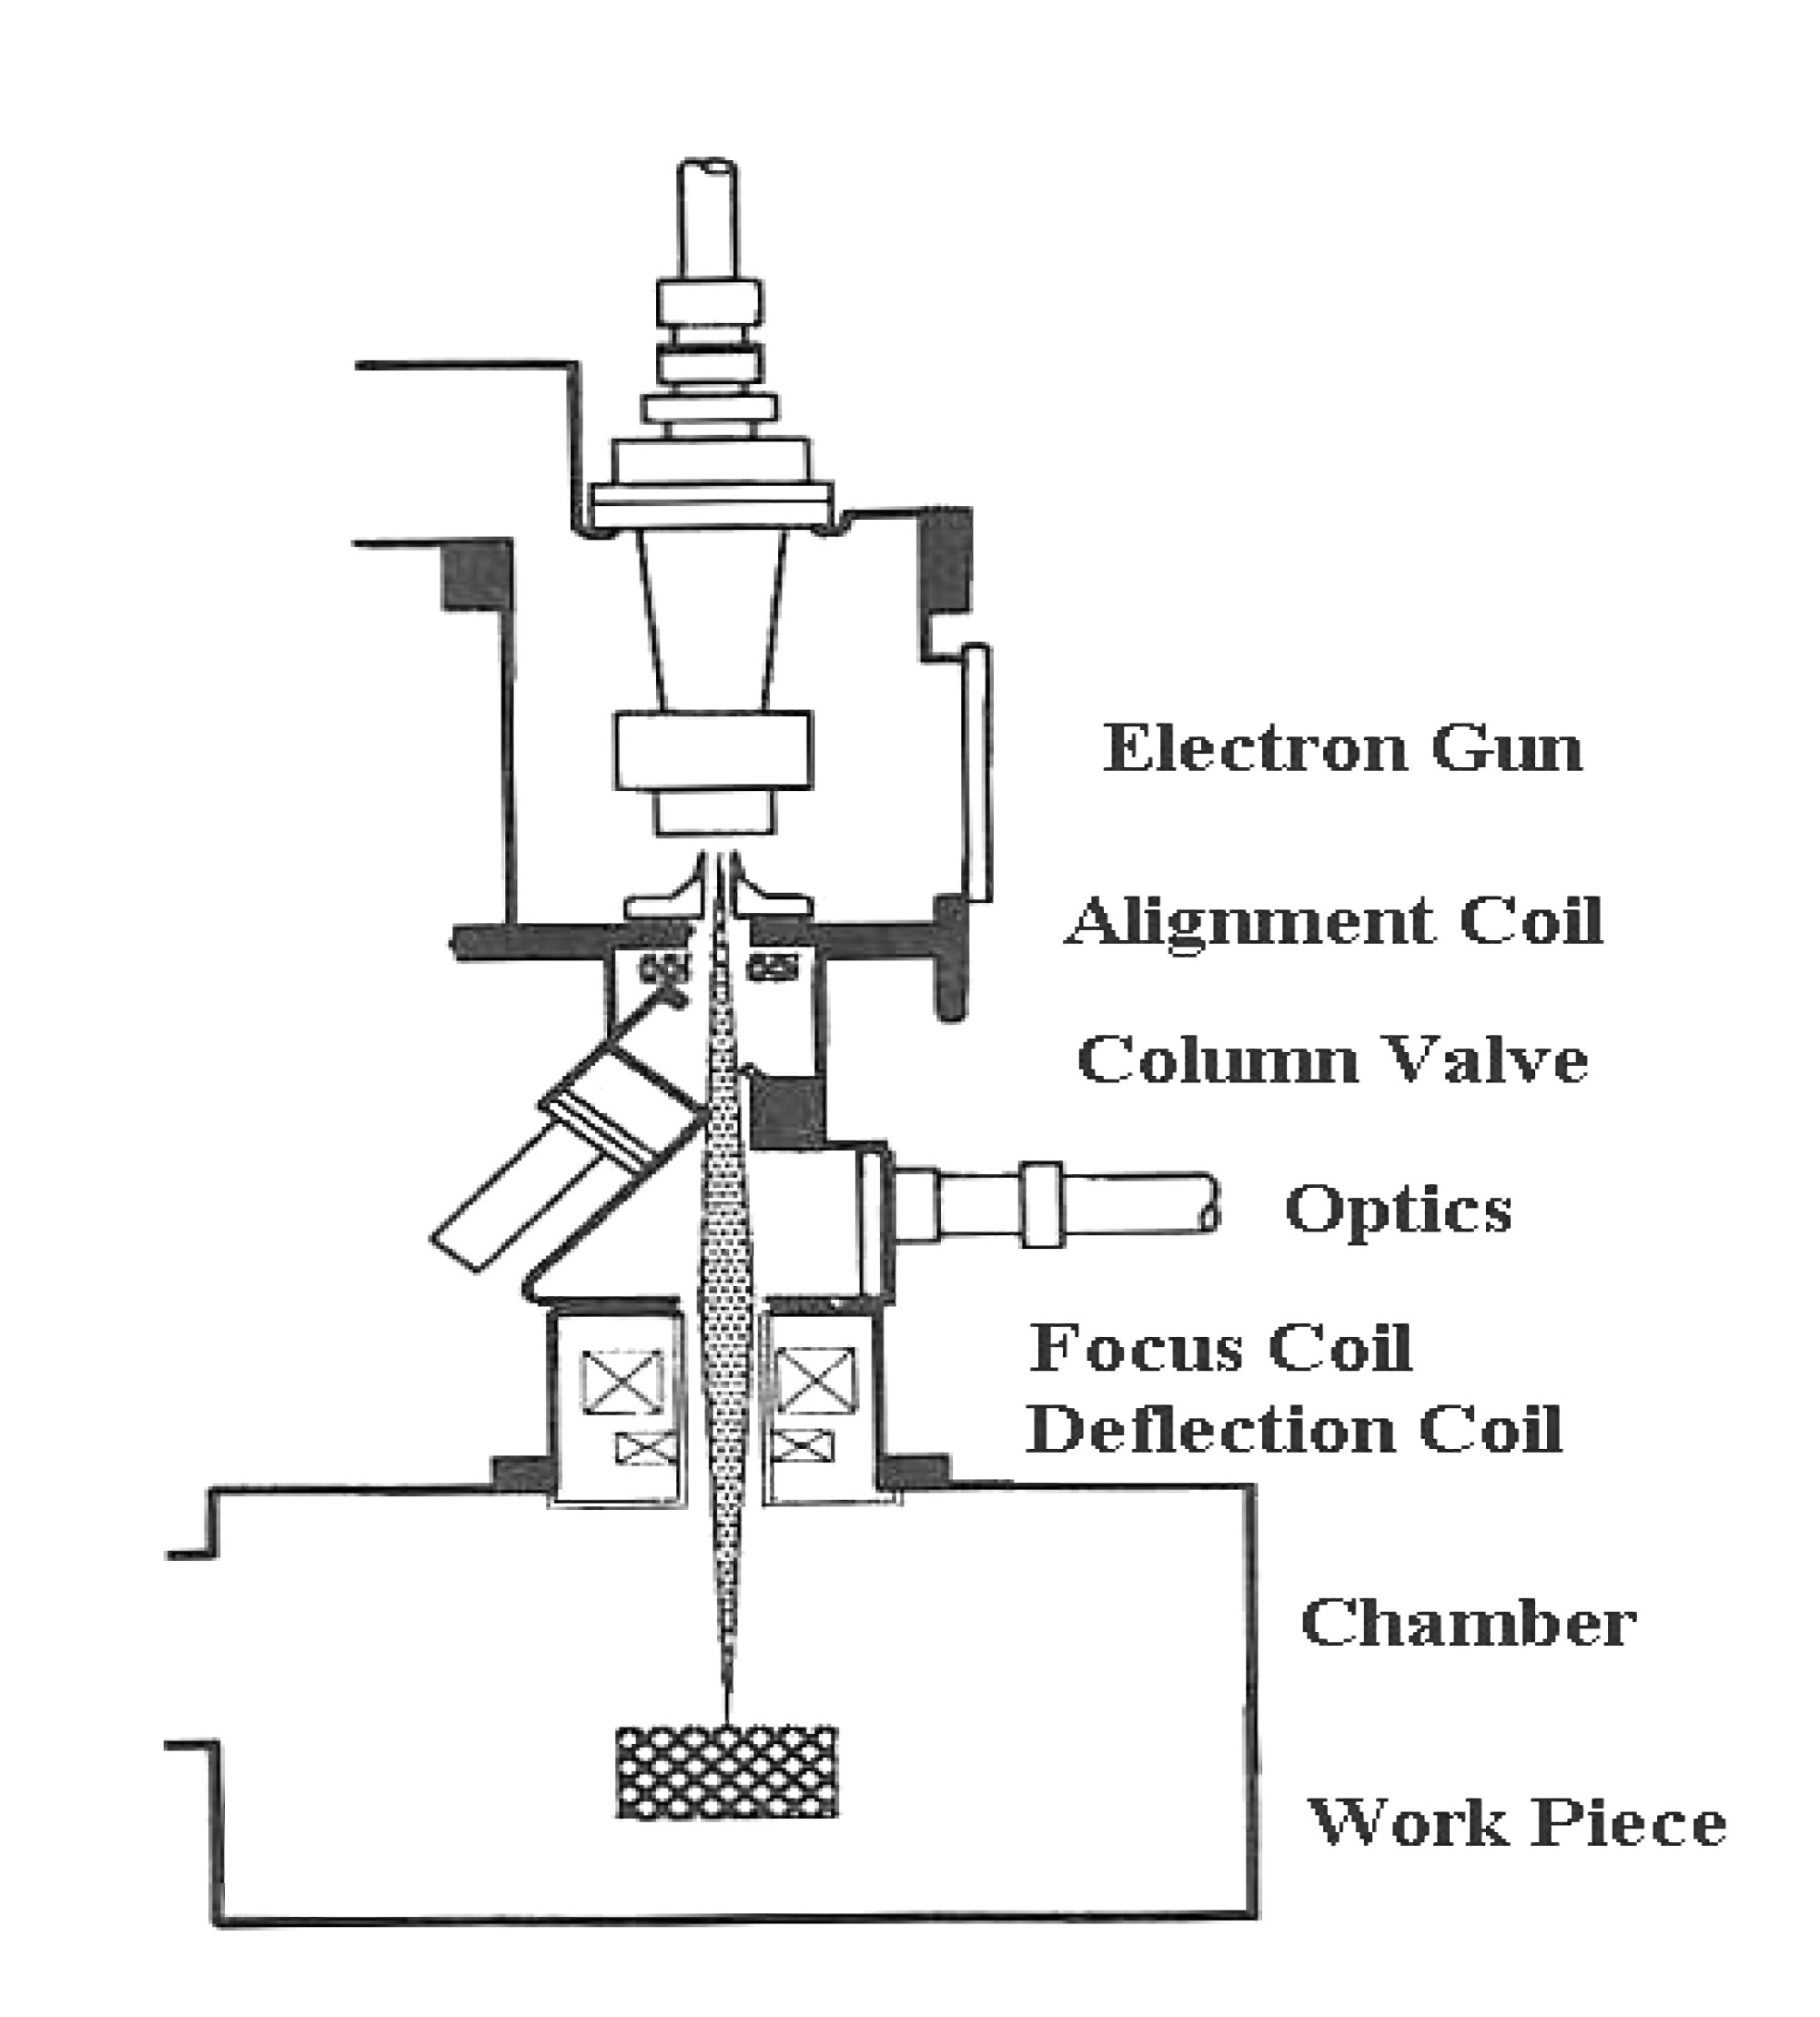 hight resolution of electron beam diagram wiring diagrams favorites electron beam lithography process diagram electron beam diagram